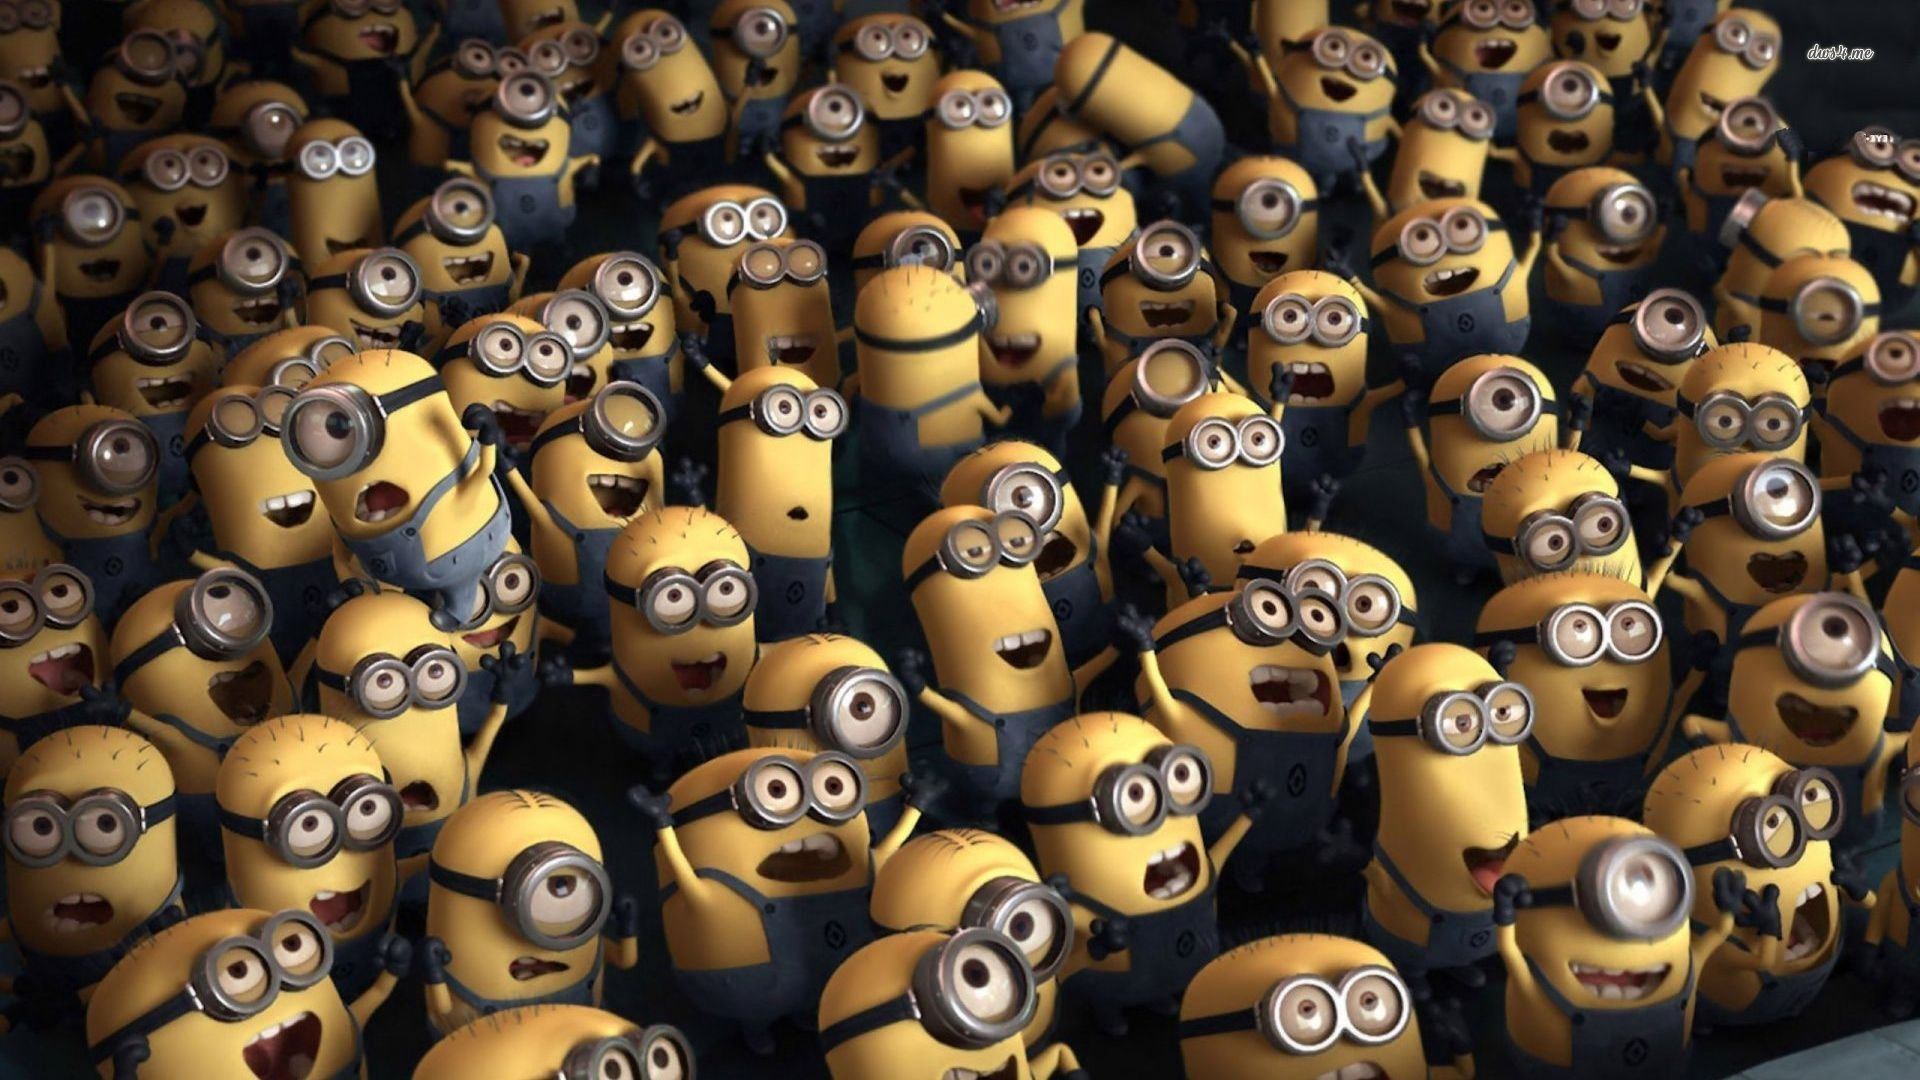 Minions-Despicable-Me-Gallery-of-Free-Download-For-1920%C3%971080-Minions-Despicable-Me-Wall-wallpaper-wpc9007683